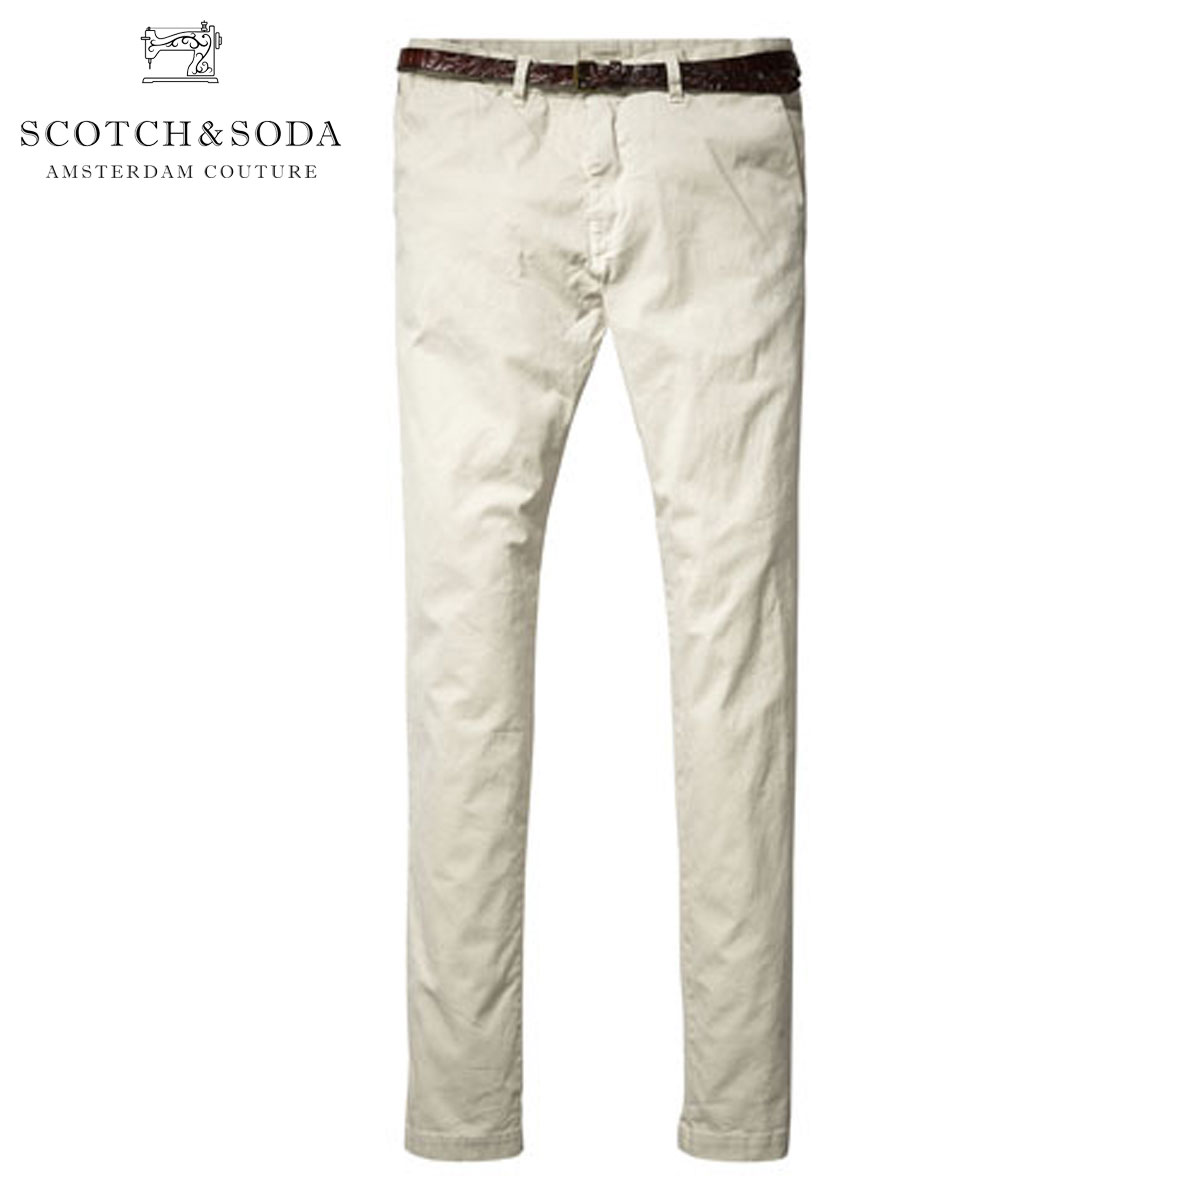 スコッチアンドソーダ SCOTCH&SODA 正規販売店 メンズ チノ Basic garment dyed chino. Slim fit - Stuart. Sold with belt 80001 07 D15S25